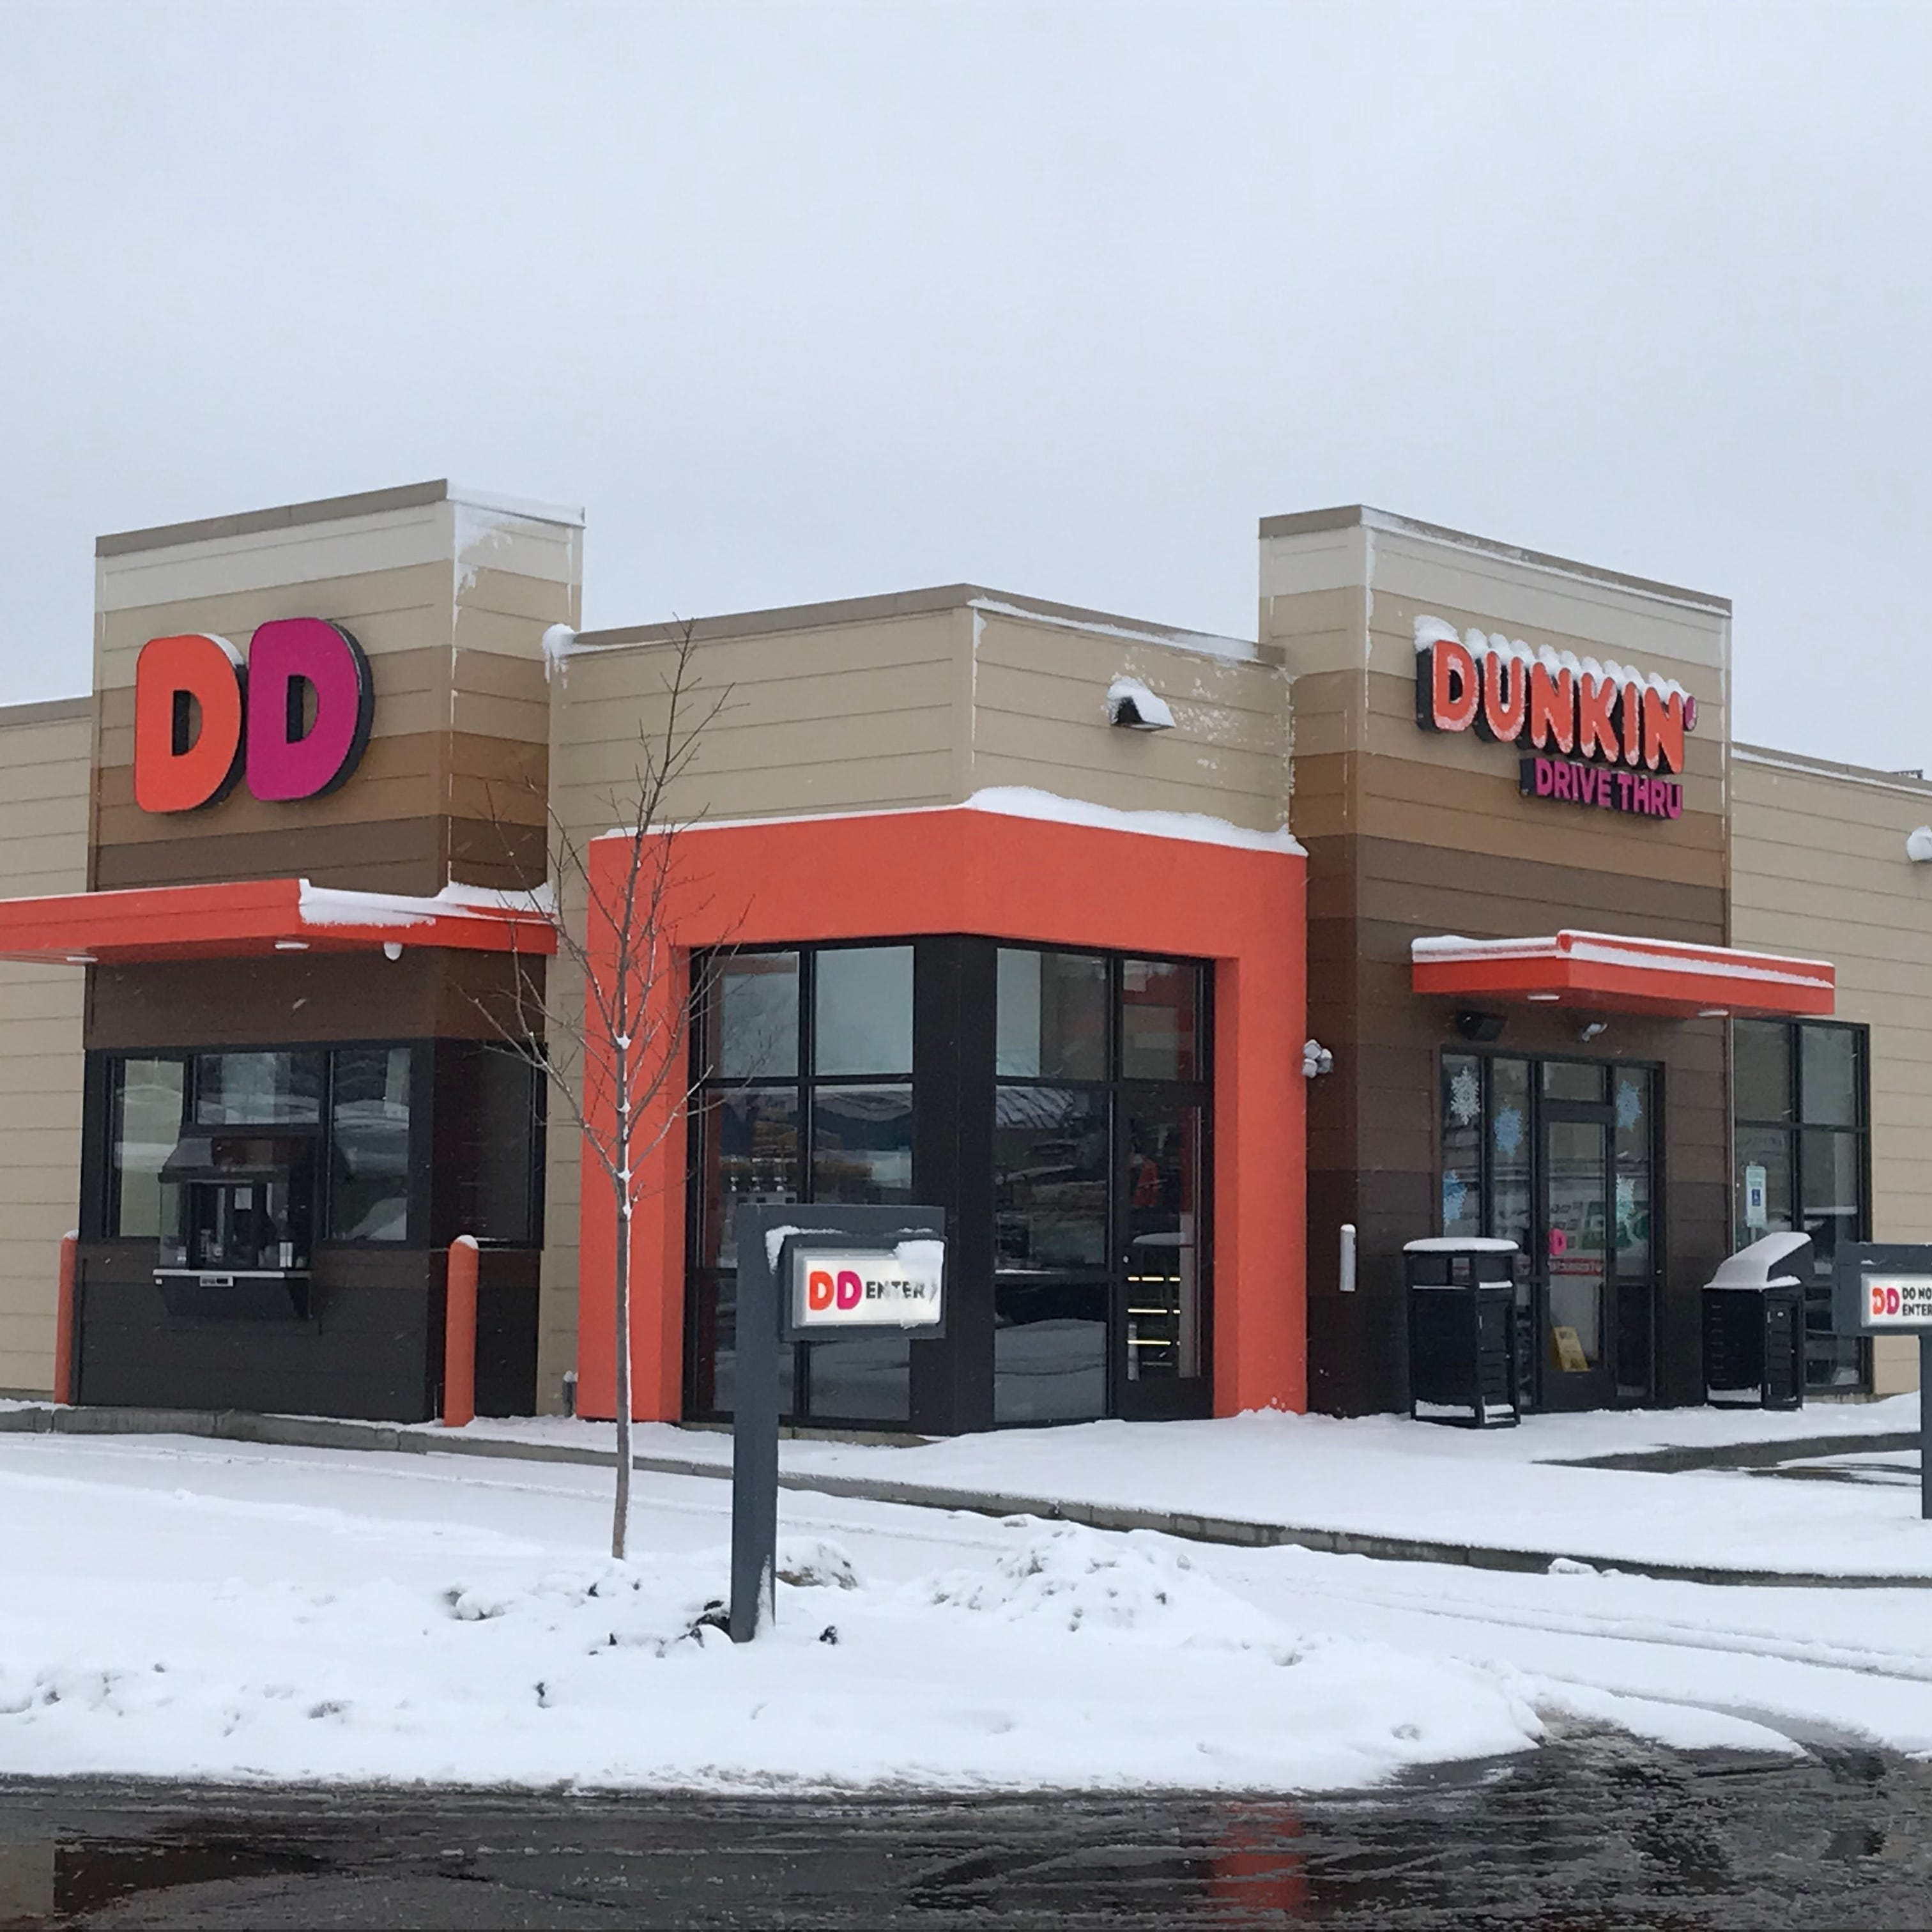 Dunkin' to host grand opening celebration this week in Wisconsin Rapids